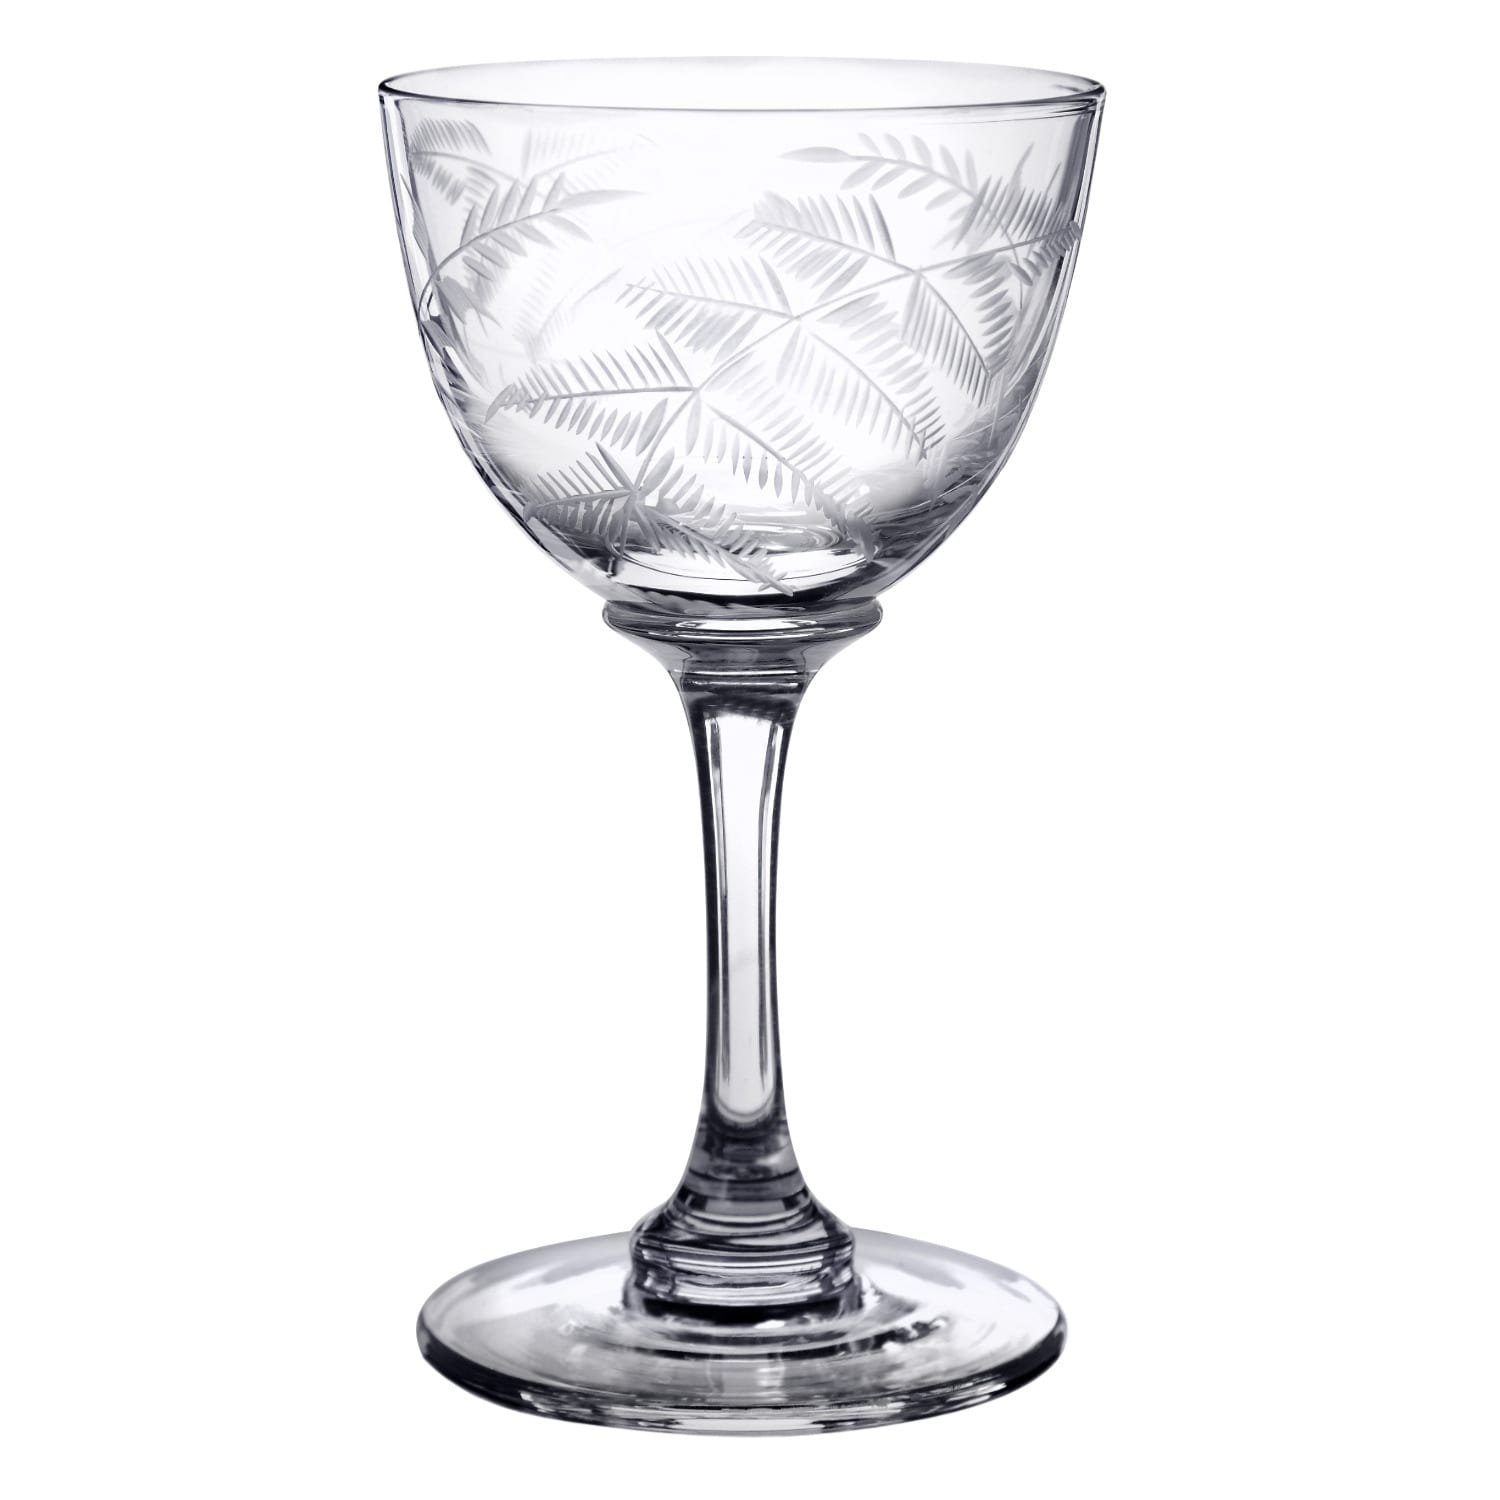 The Vintage List - Six Hand-Engraved Crystal Liqueur Glasses With Ferns Design